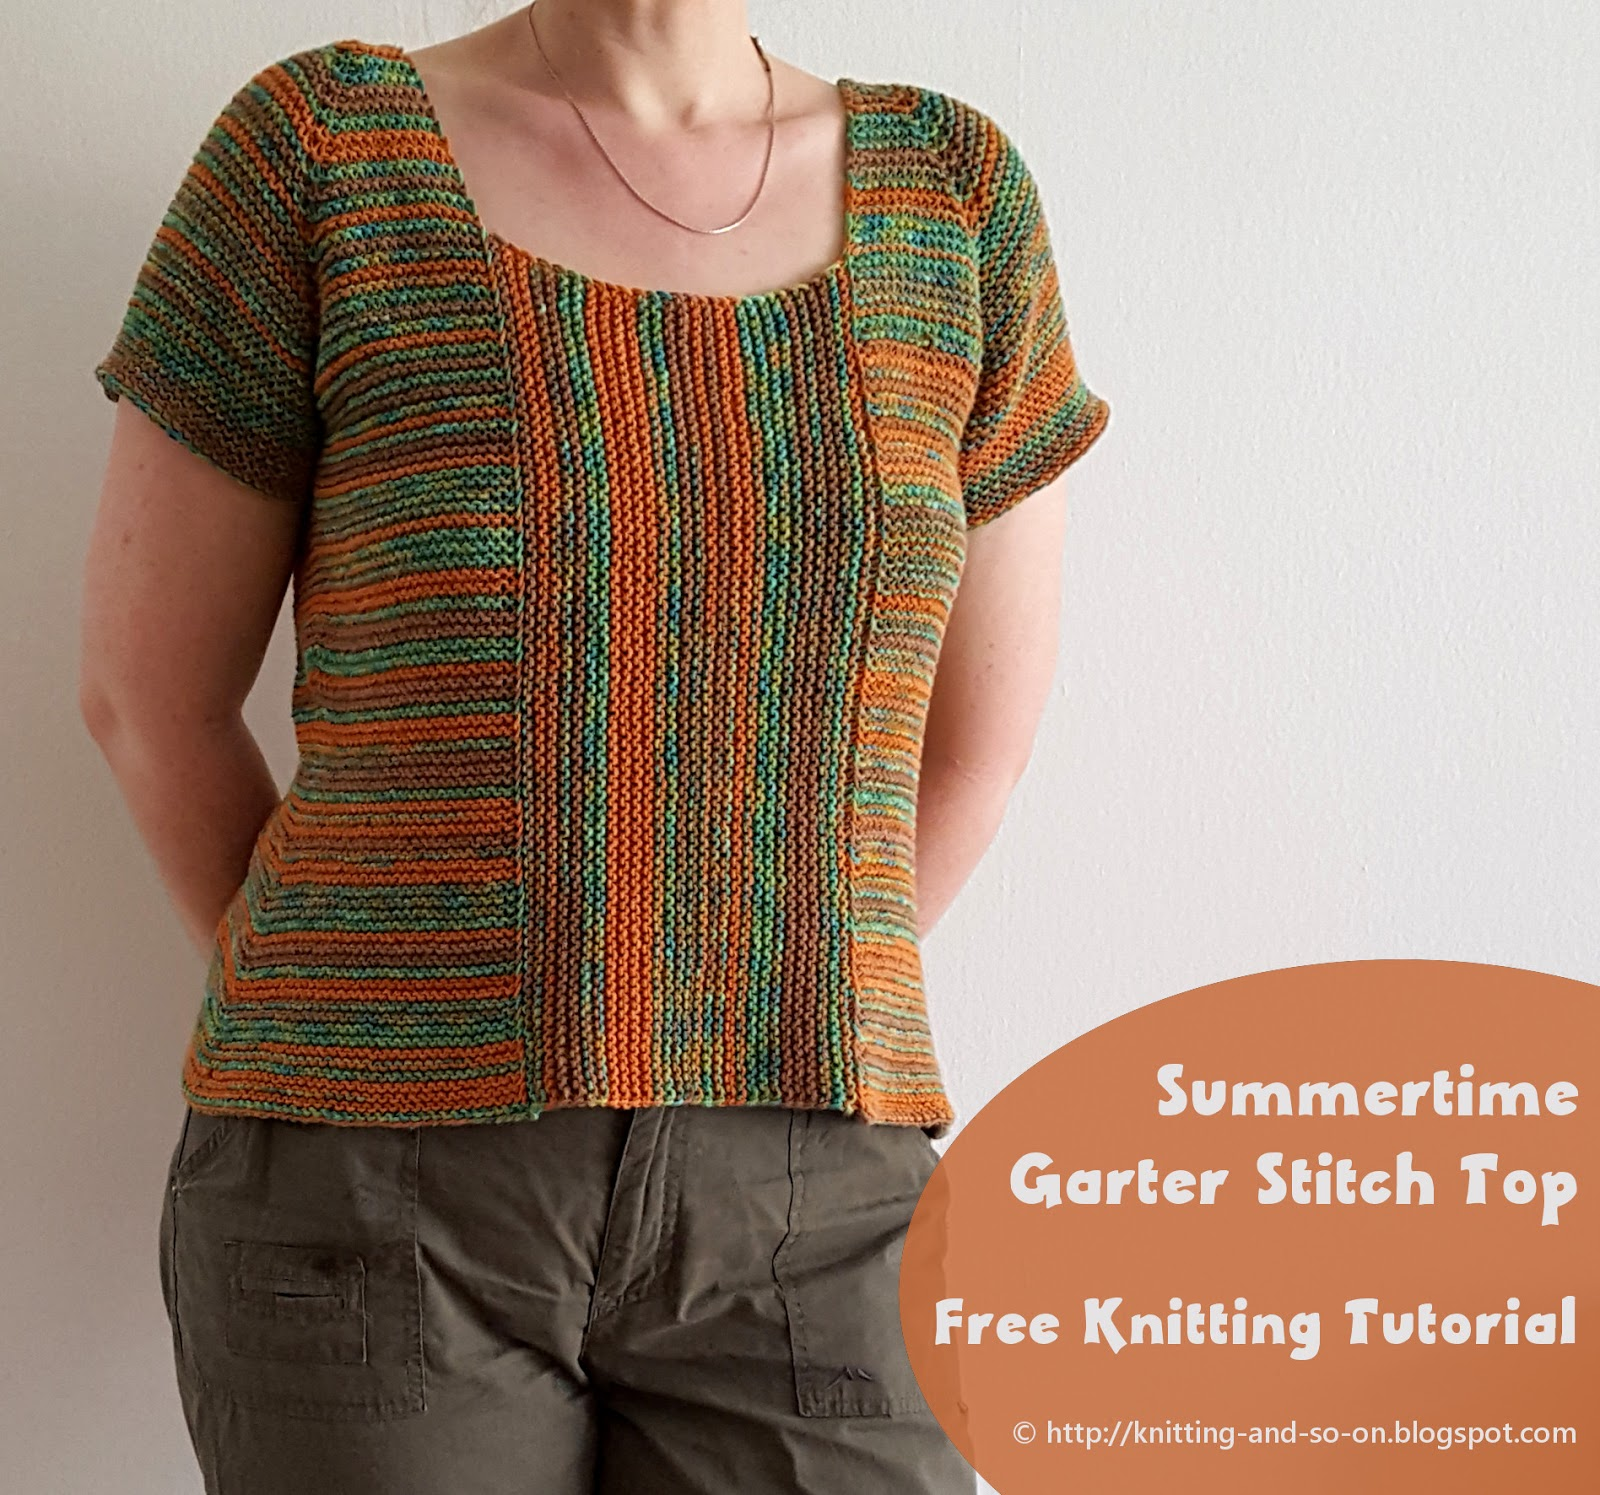 Knitting And So On Summertime Garter Stitch Top